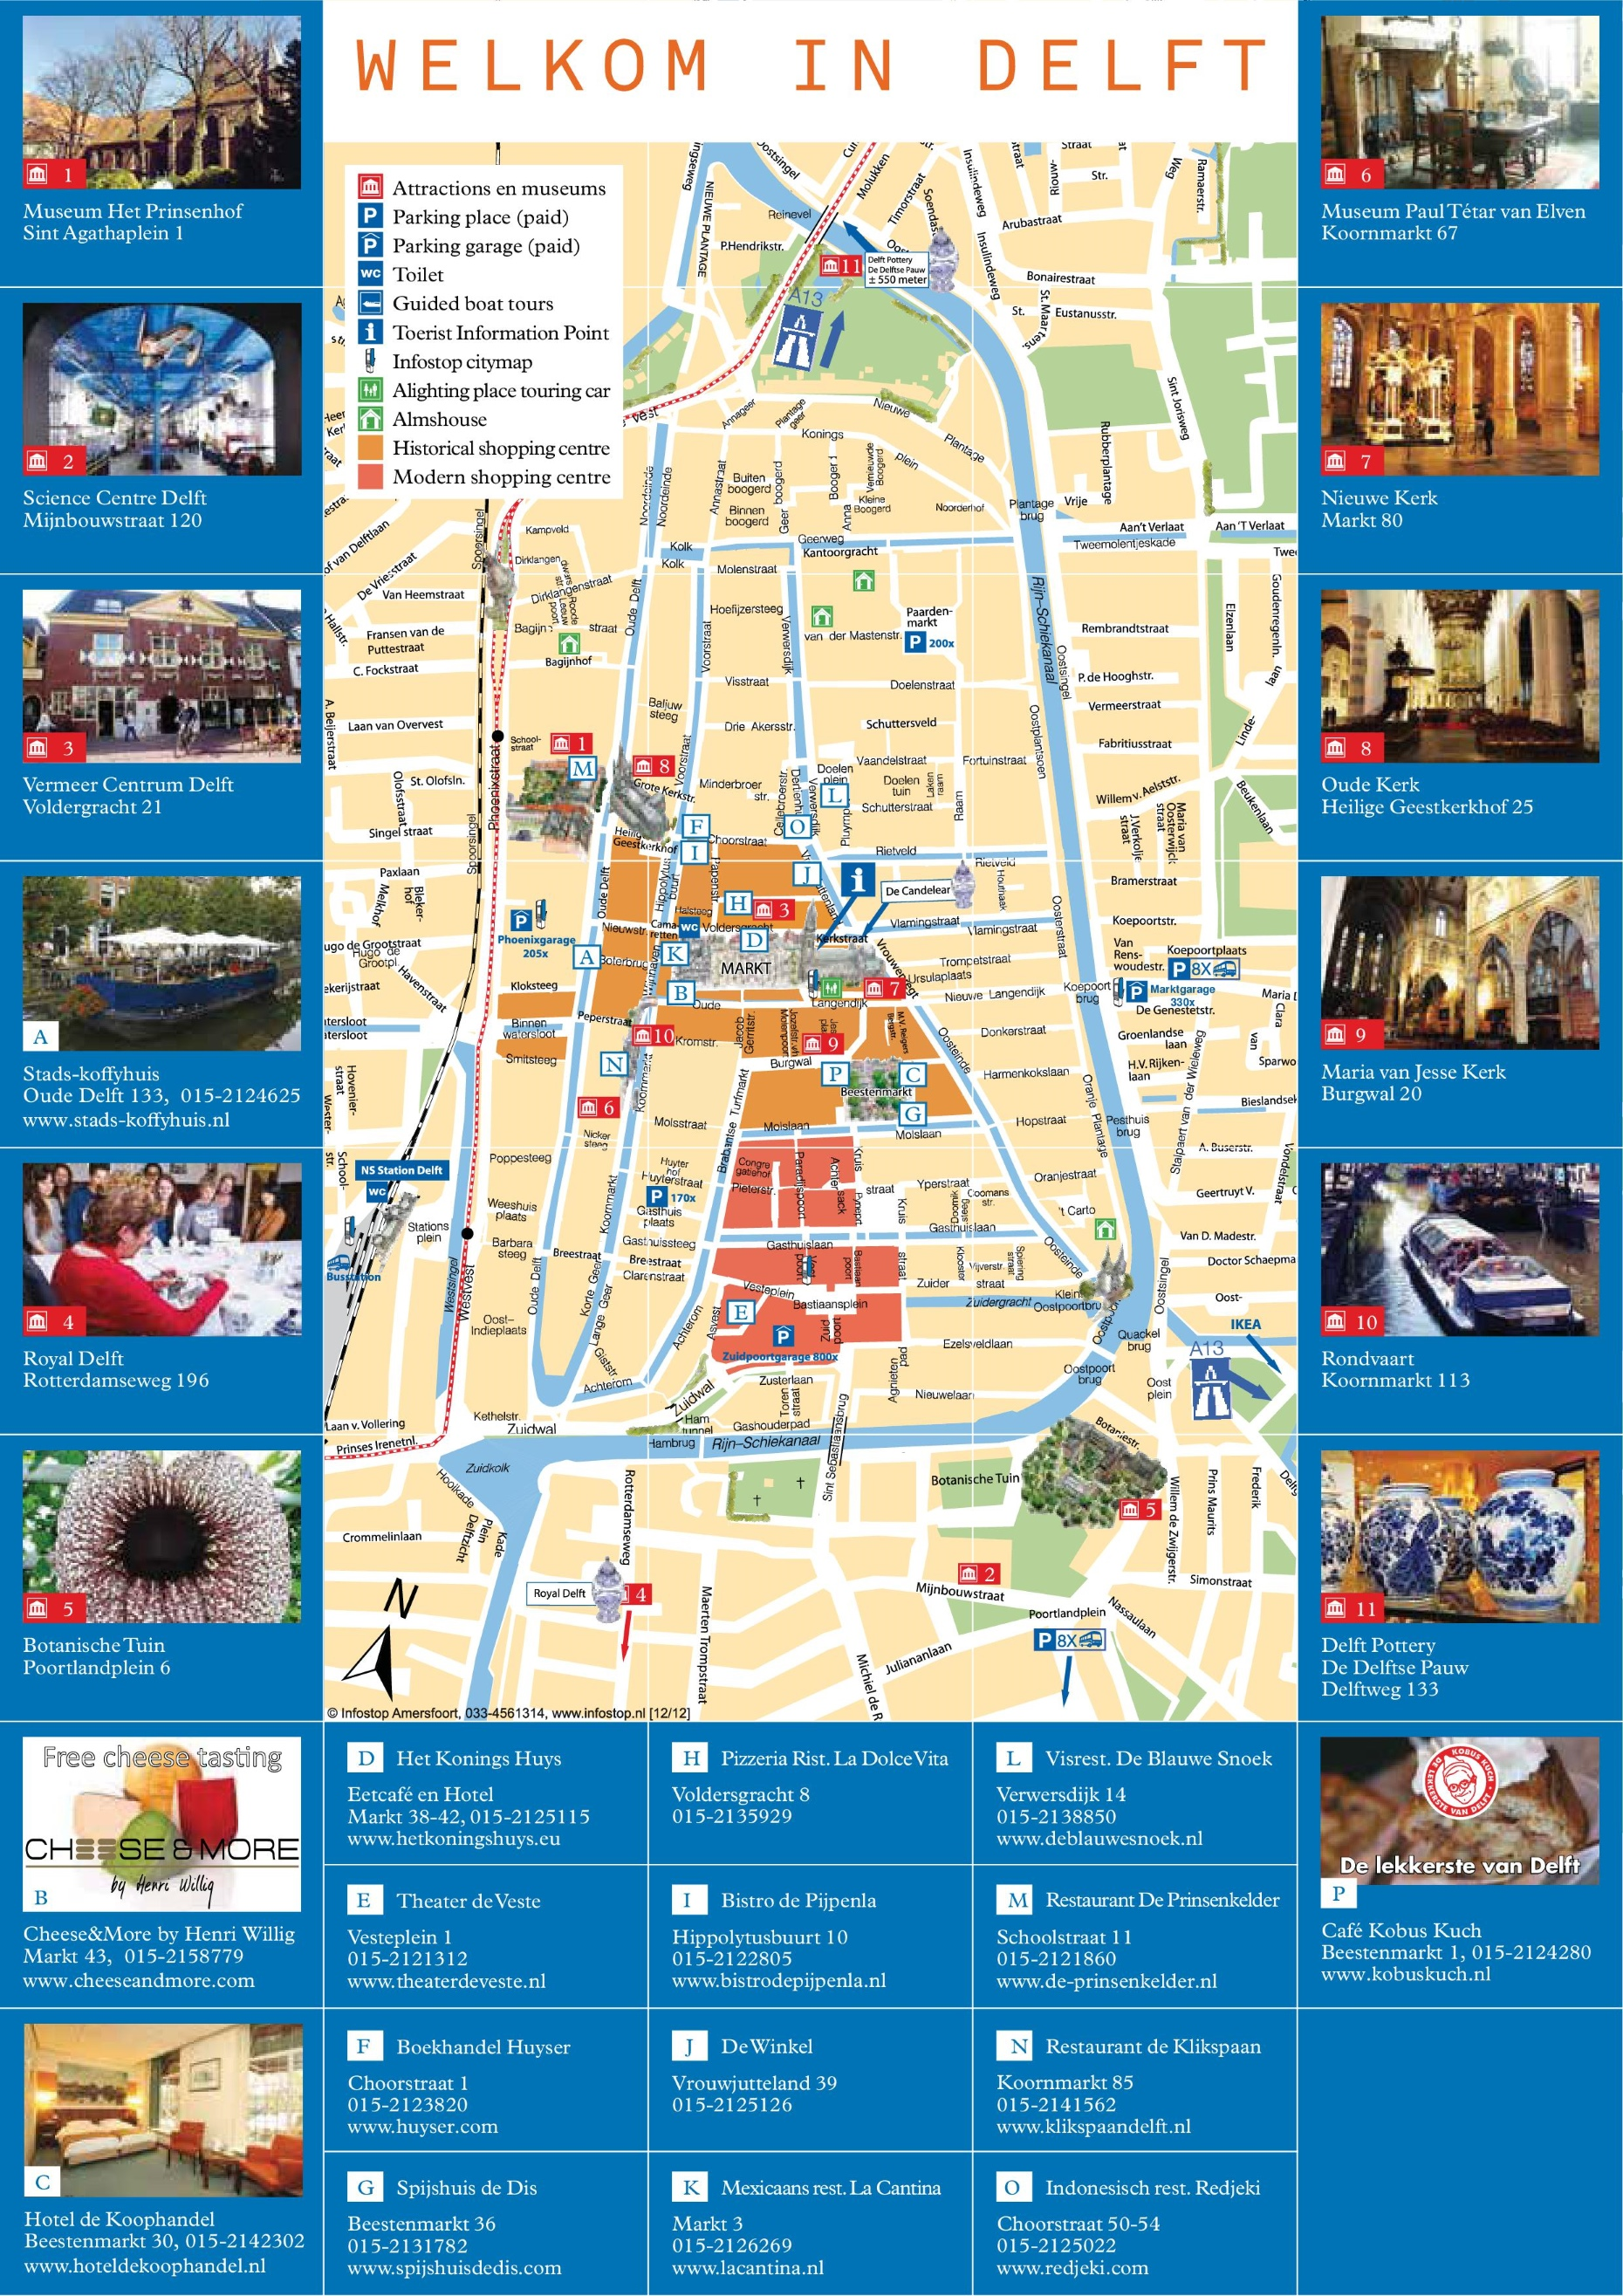 Delft tourist map – The Hague Tourist Map